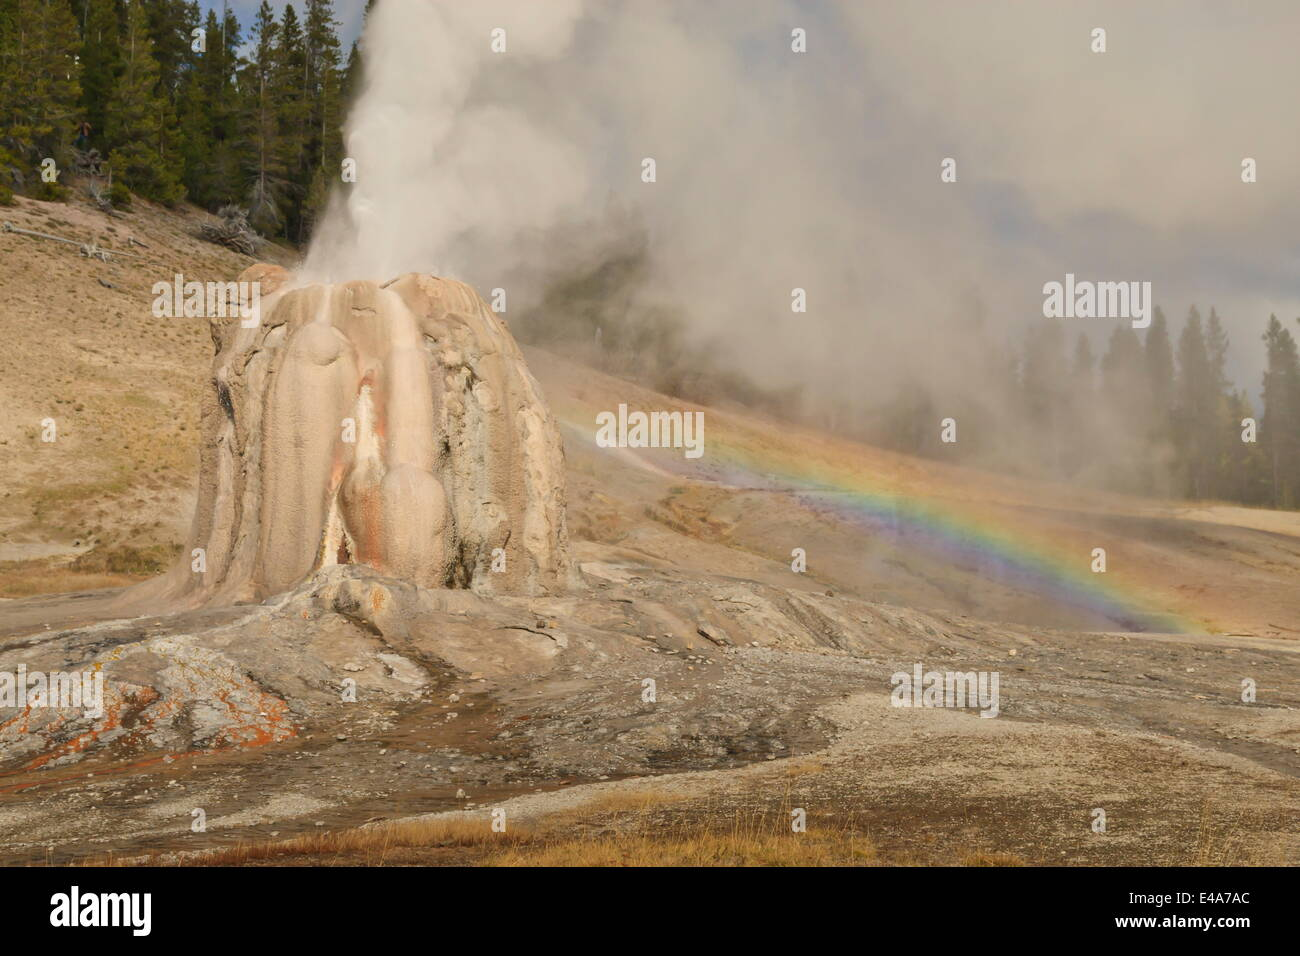 Lone Star Geyser erupts and creates rainbow, Yellowstone National Park, UNESCO, Wyoming, USA - Stock Image